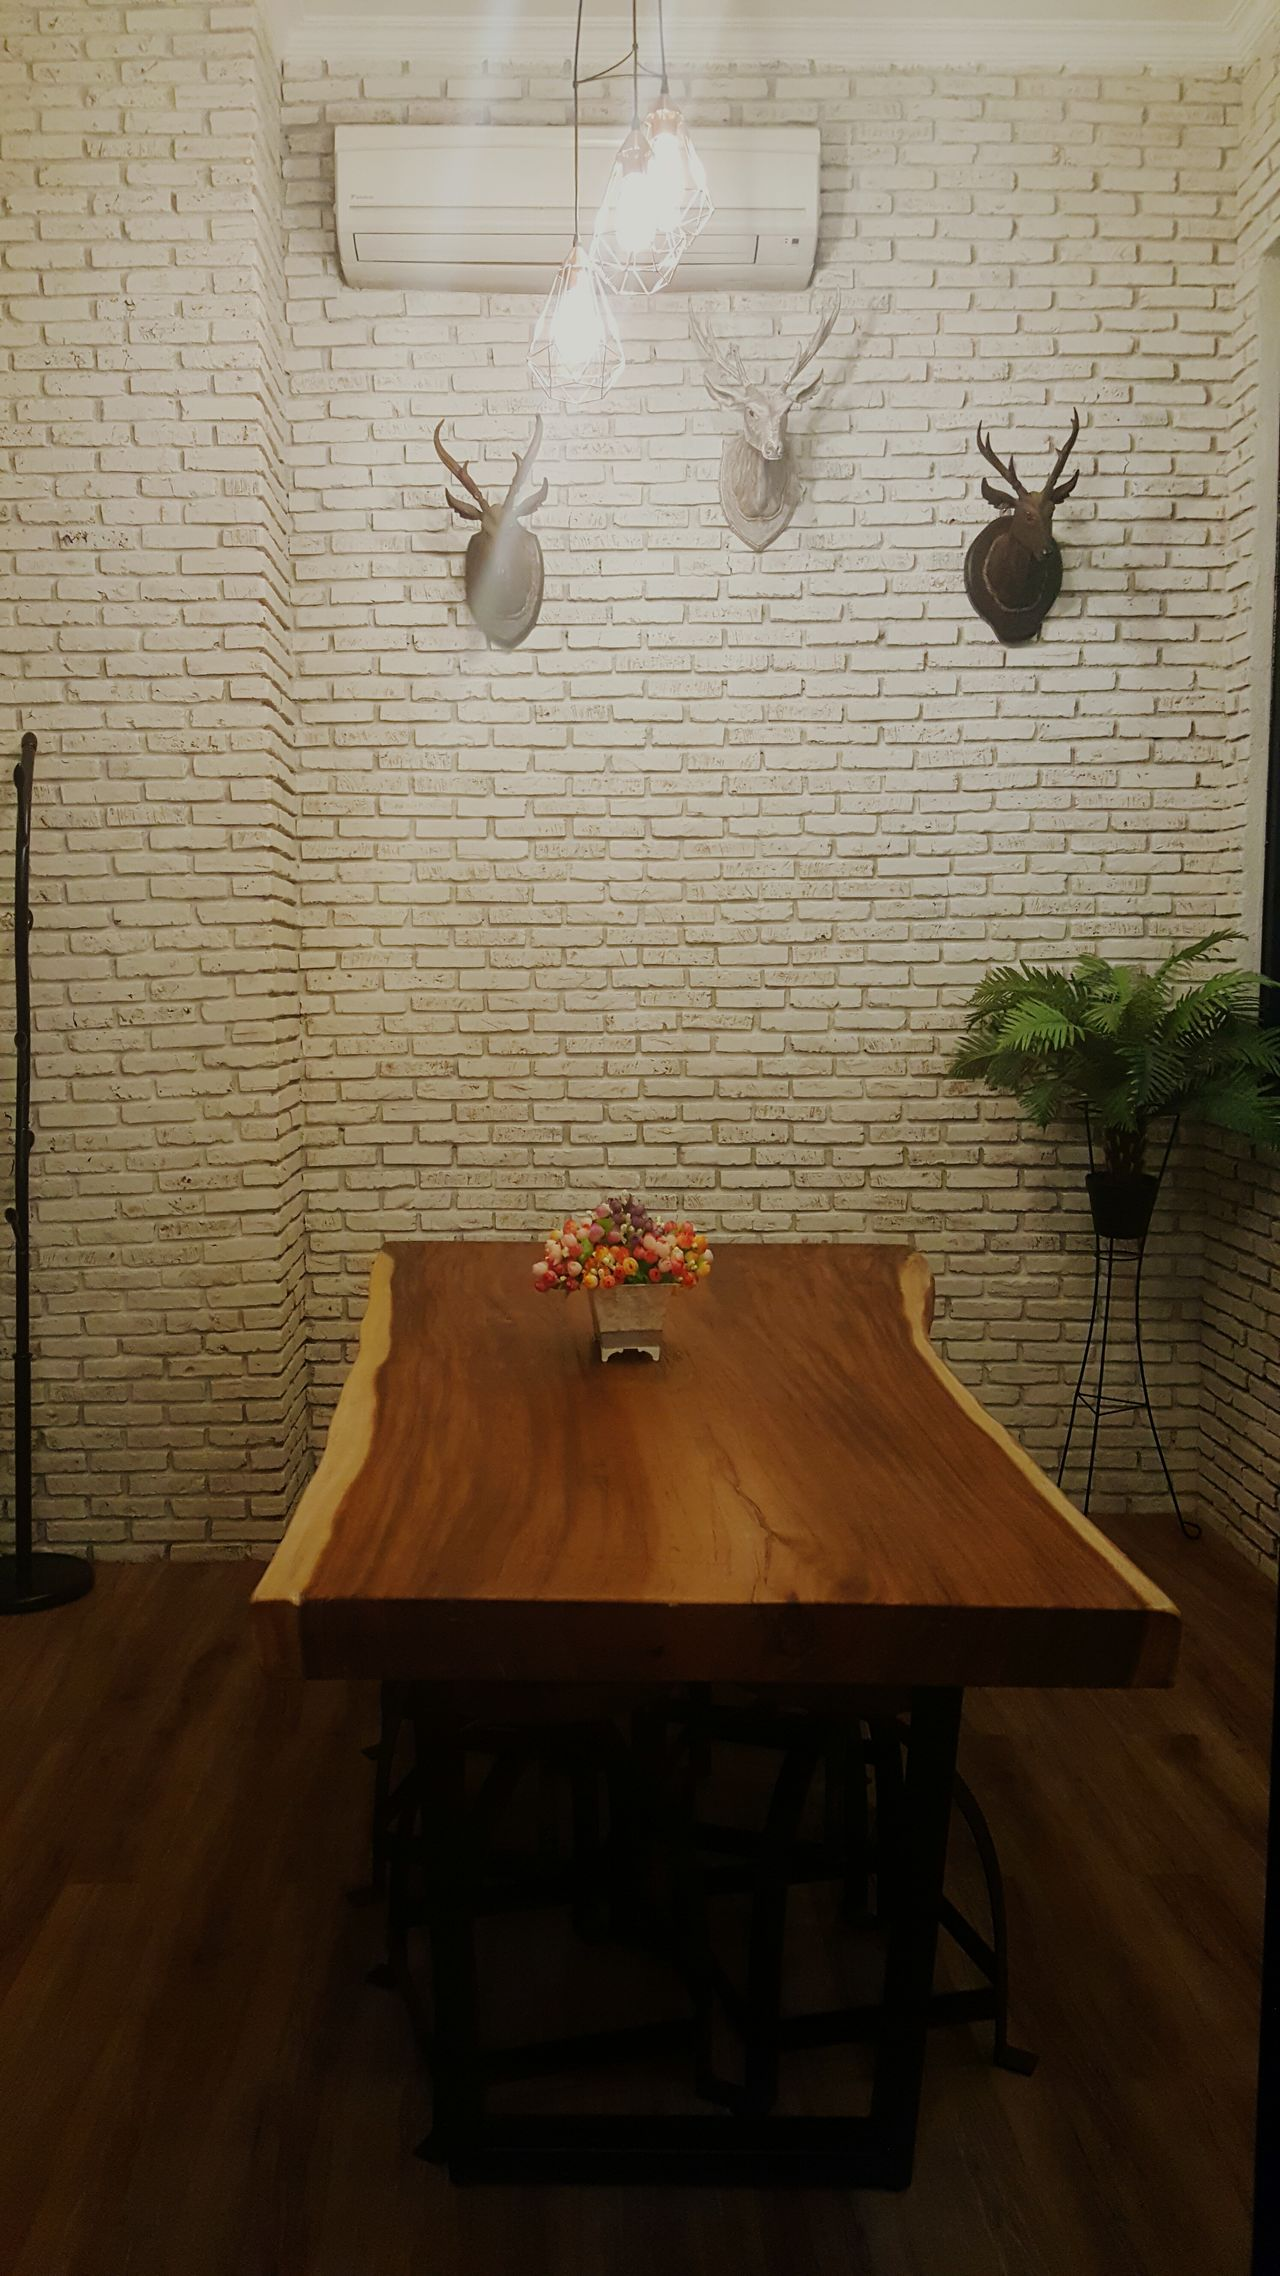 Dining Room Diningroom Diningtable Wooden Texture Wooden Table Wooden Floor Interior Design Interior Decoration Ambience Photography